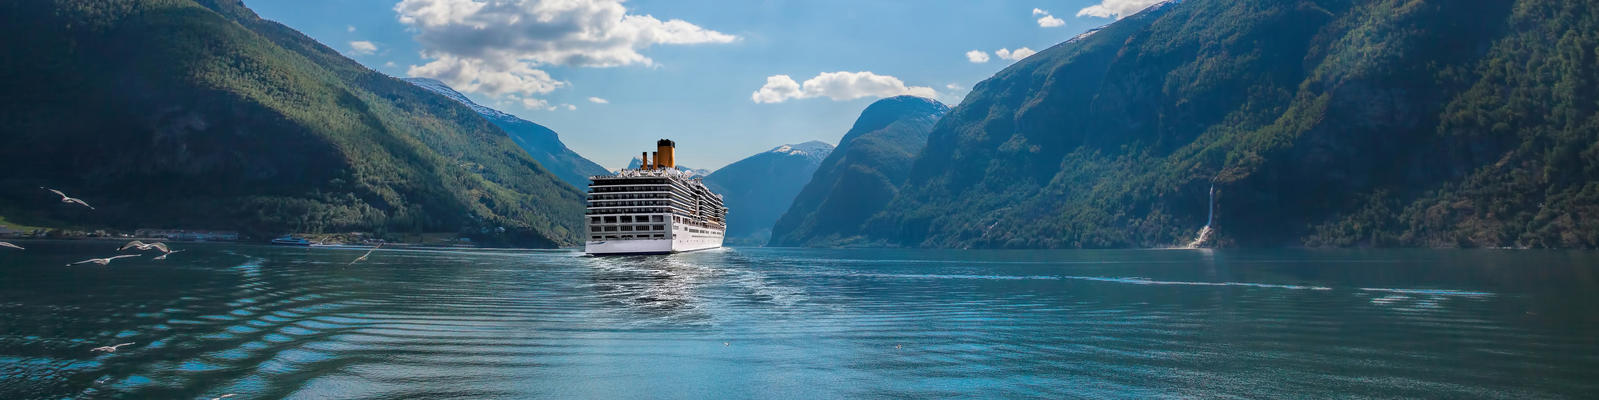 What to Do If Your Cruise Ship Leaves You Behind and How to Prepare So It Doesn't Happen to You (Photo: Samot/Shutterstock.com)